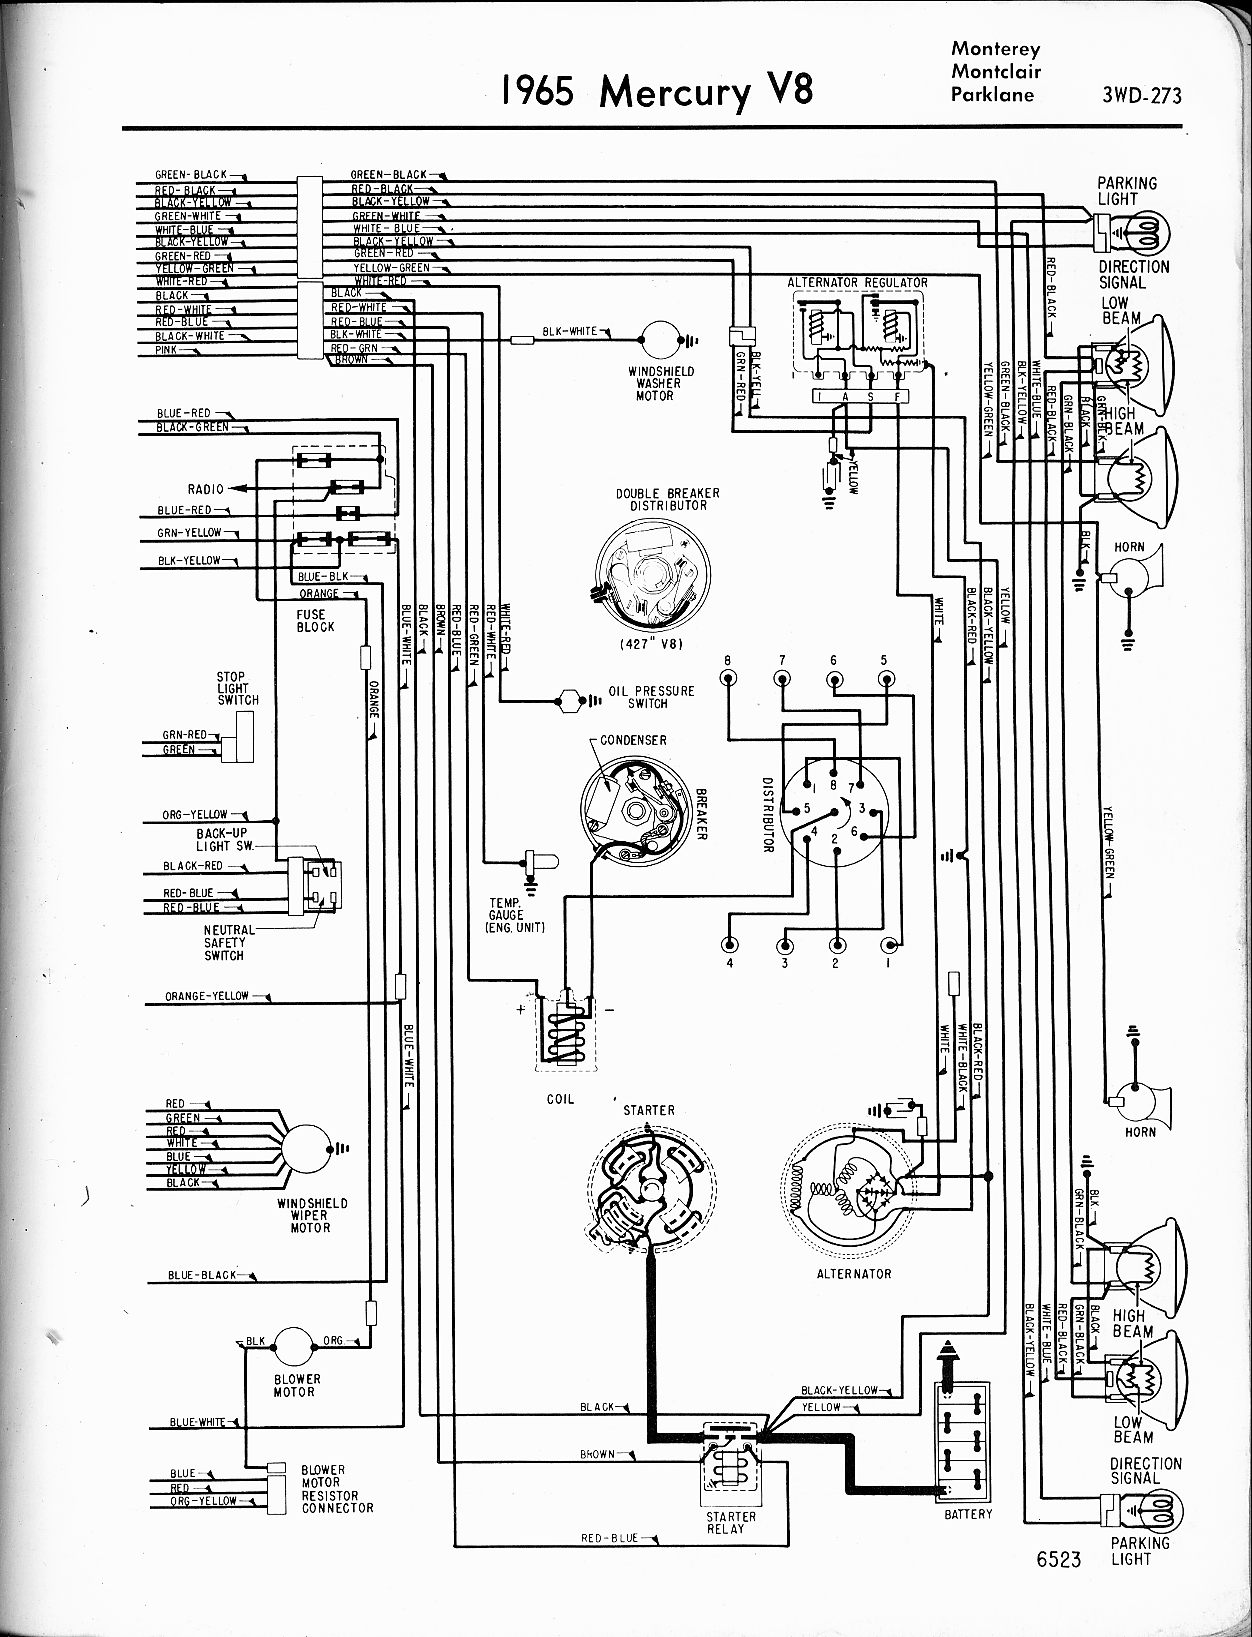 DIAGRAM] 2002 Mercury Cougar Wiring Diagram Grounds FULL Version HD Quality  Diagram Grounds - WEBUMLDIAGRAMS.BELEN-RODRIGUEZ.ITbelen-rodriguez.it